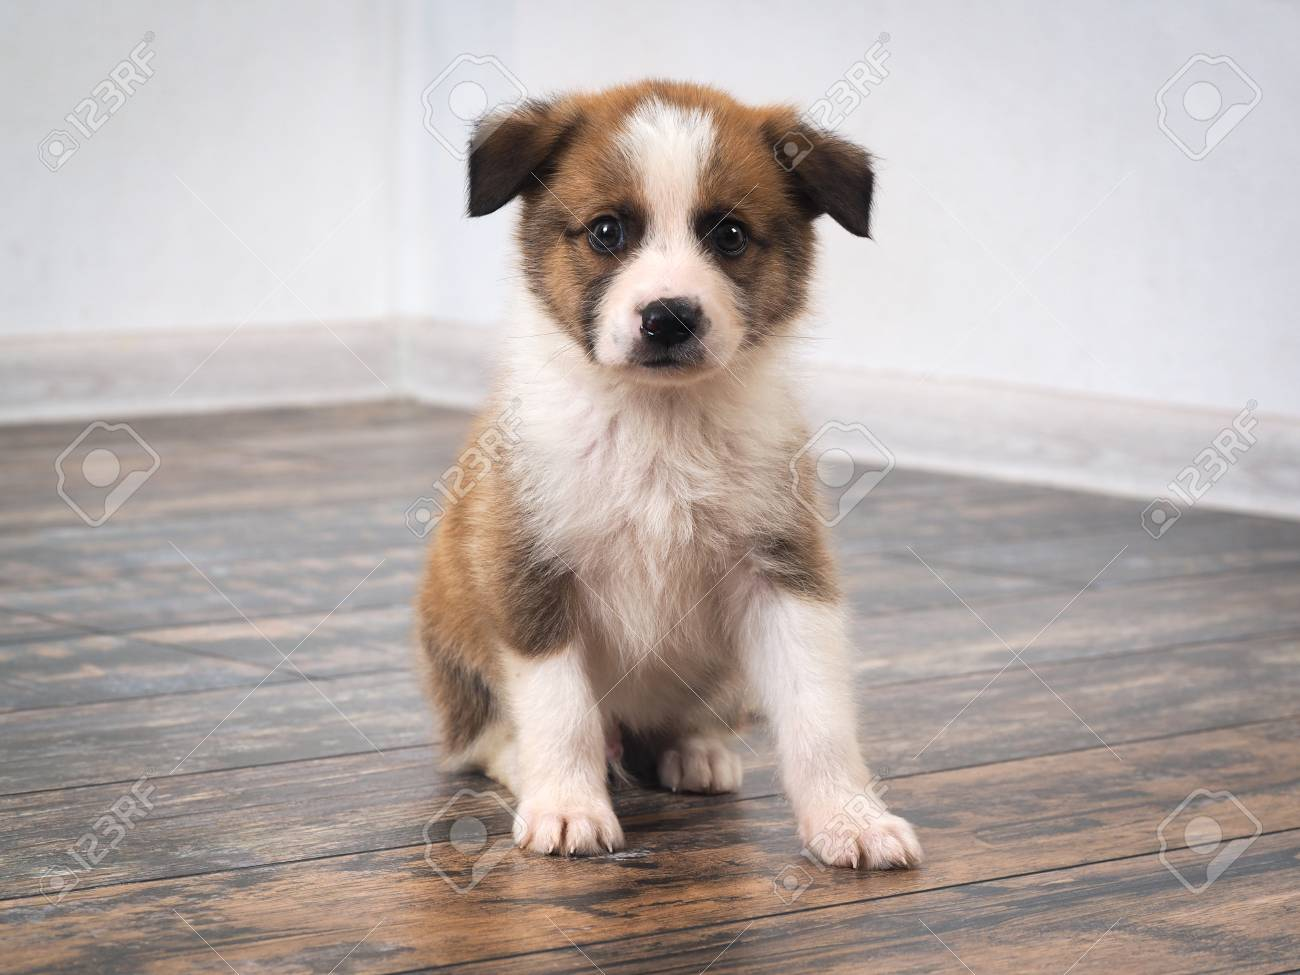 Purebred dog sitting on the old wooden floor. Puppy 1 month. - 81357479